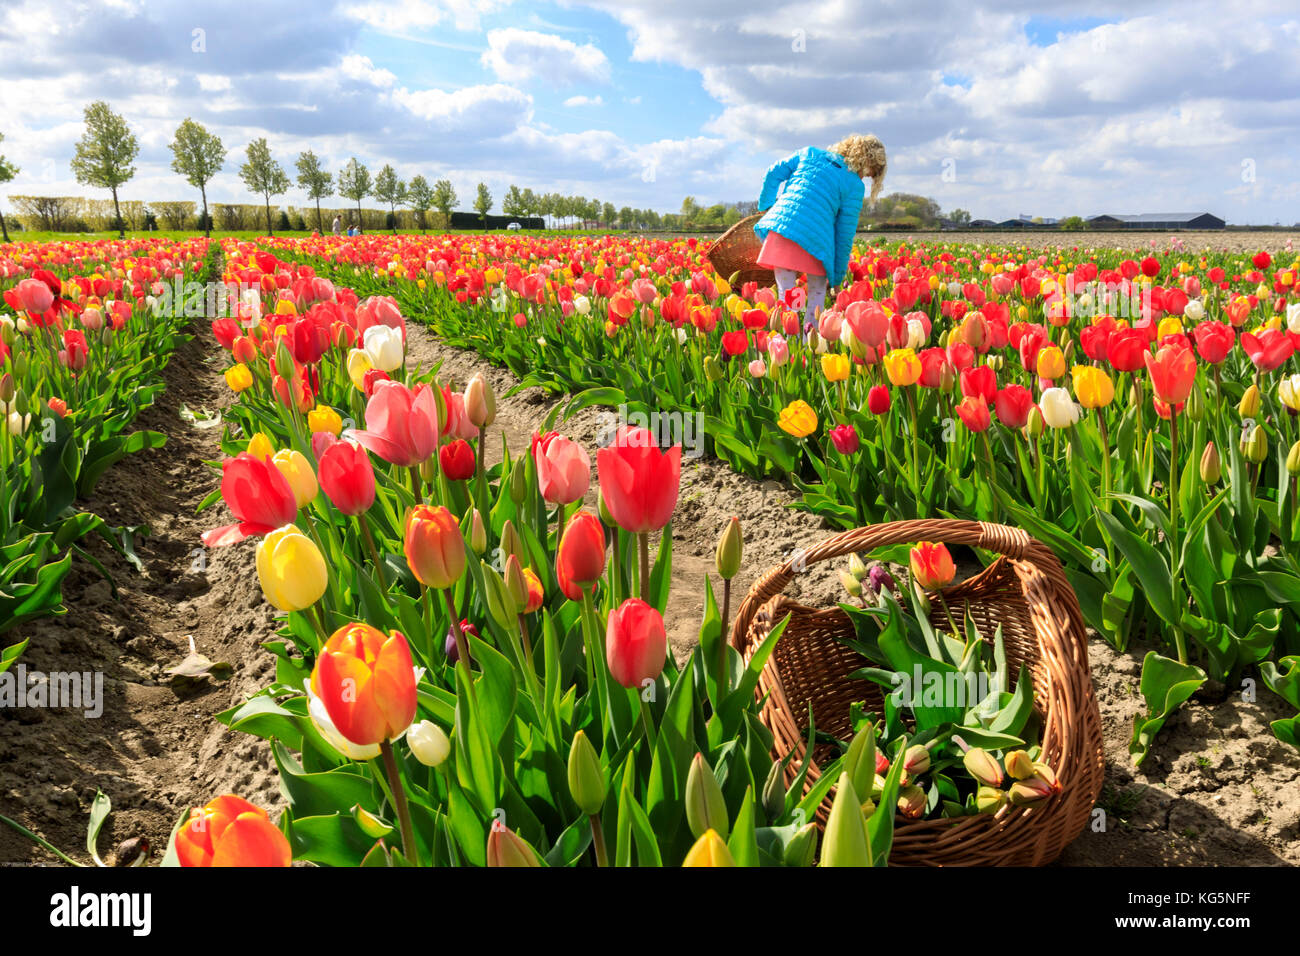 Girl collects the multicolored tulips during spring Yerseke Reimerswaal province of Zeeland Holland The Netherlands - Stock Image